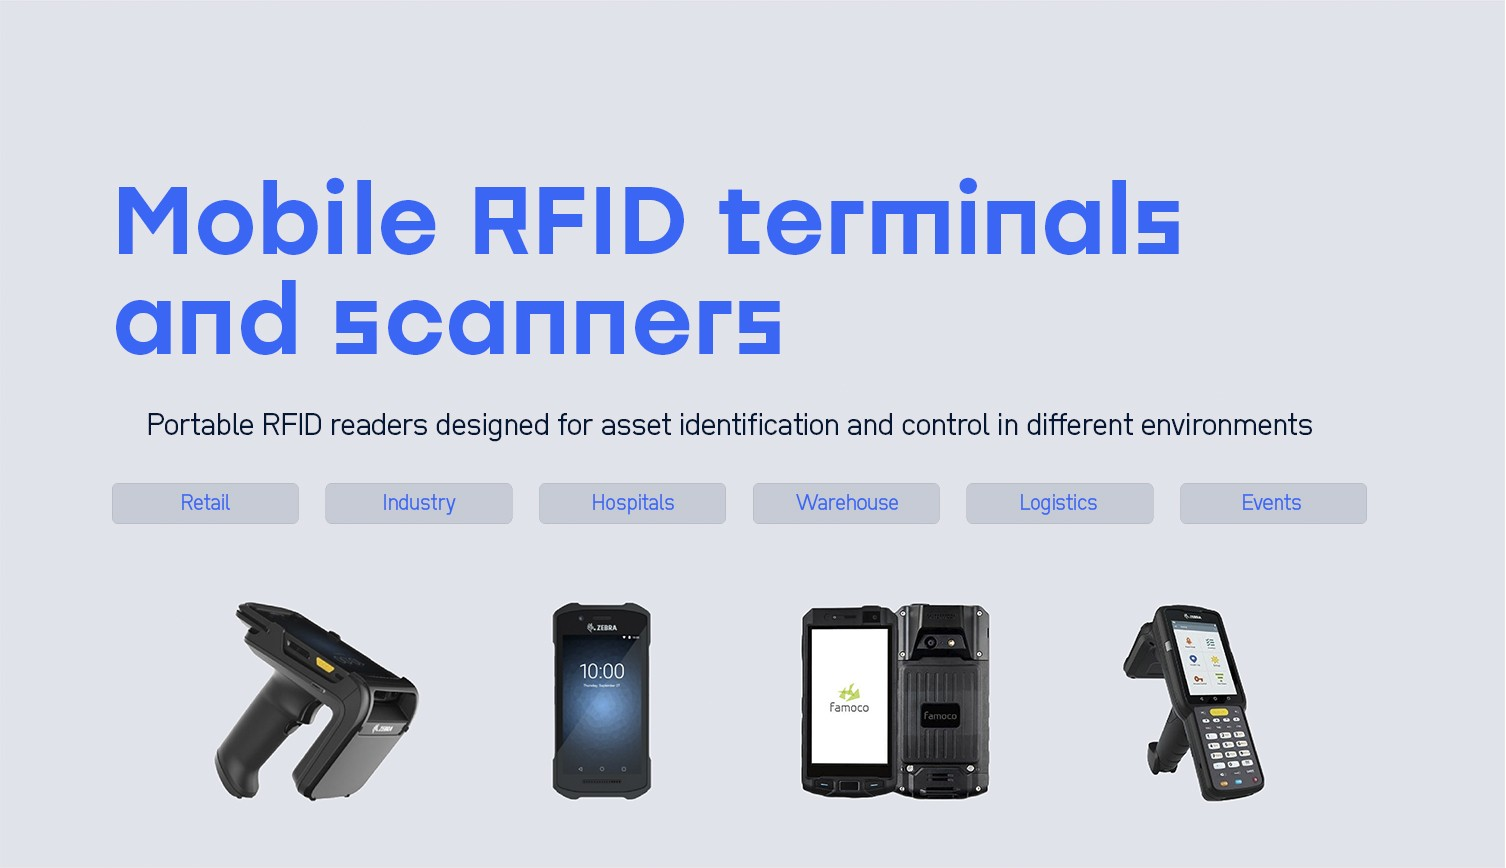 Mobile RFID terminals and scanners